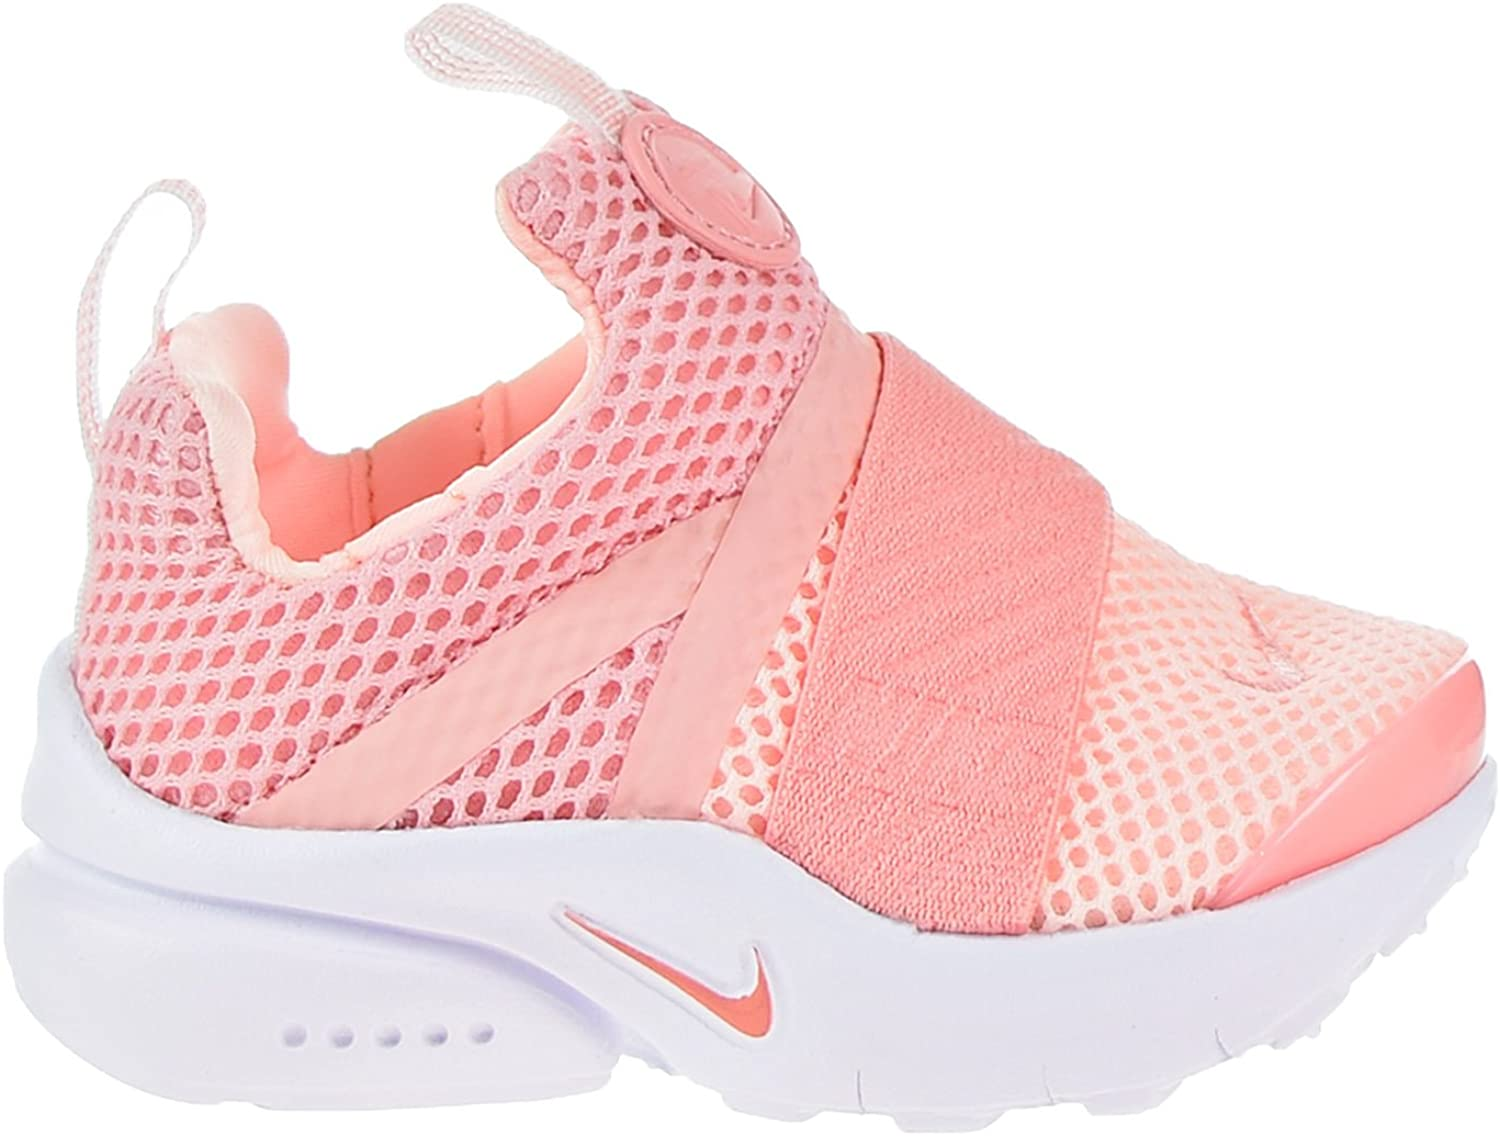 Papá Arriba Masaje  Amazon.com | NIKE Presto Extreme Toddlers' Shoes Black/Black Pink/Prime  White 870021-004 | Sneakers